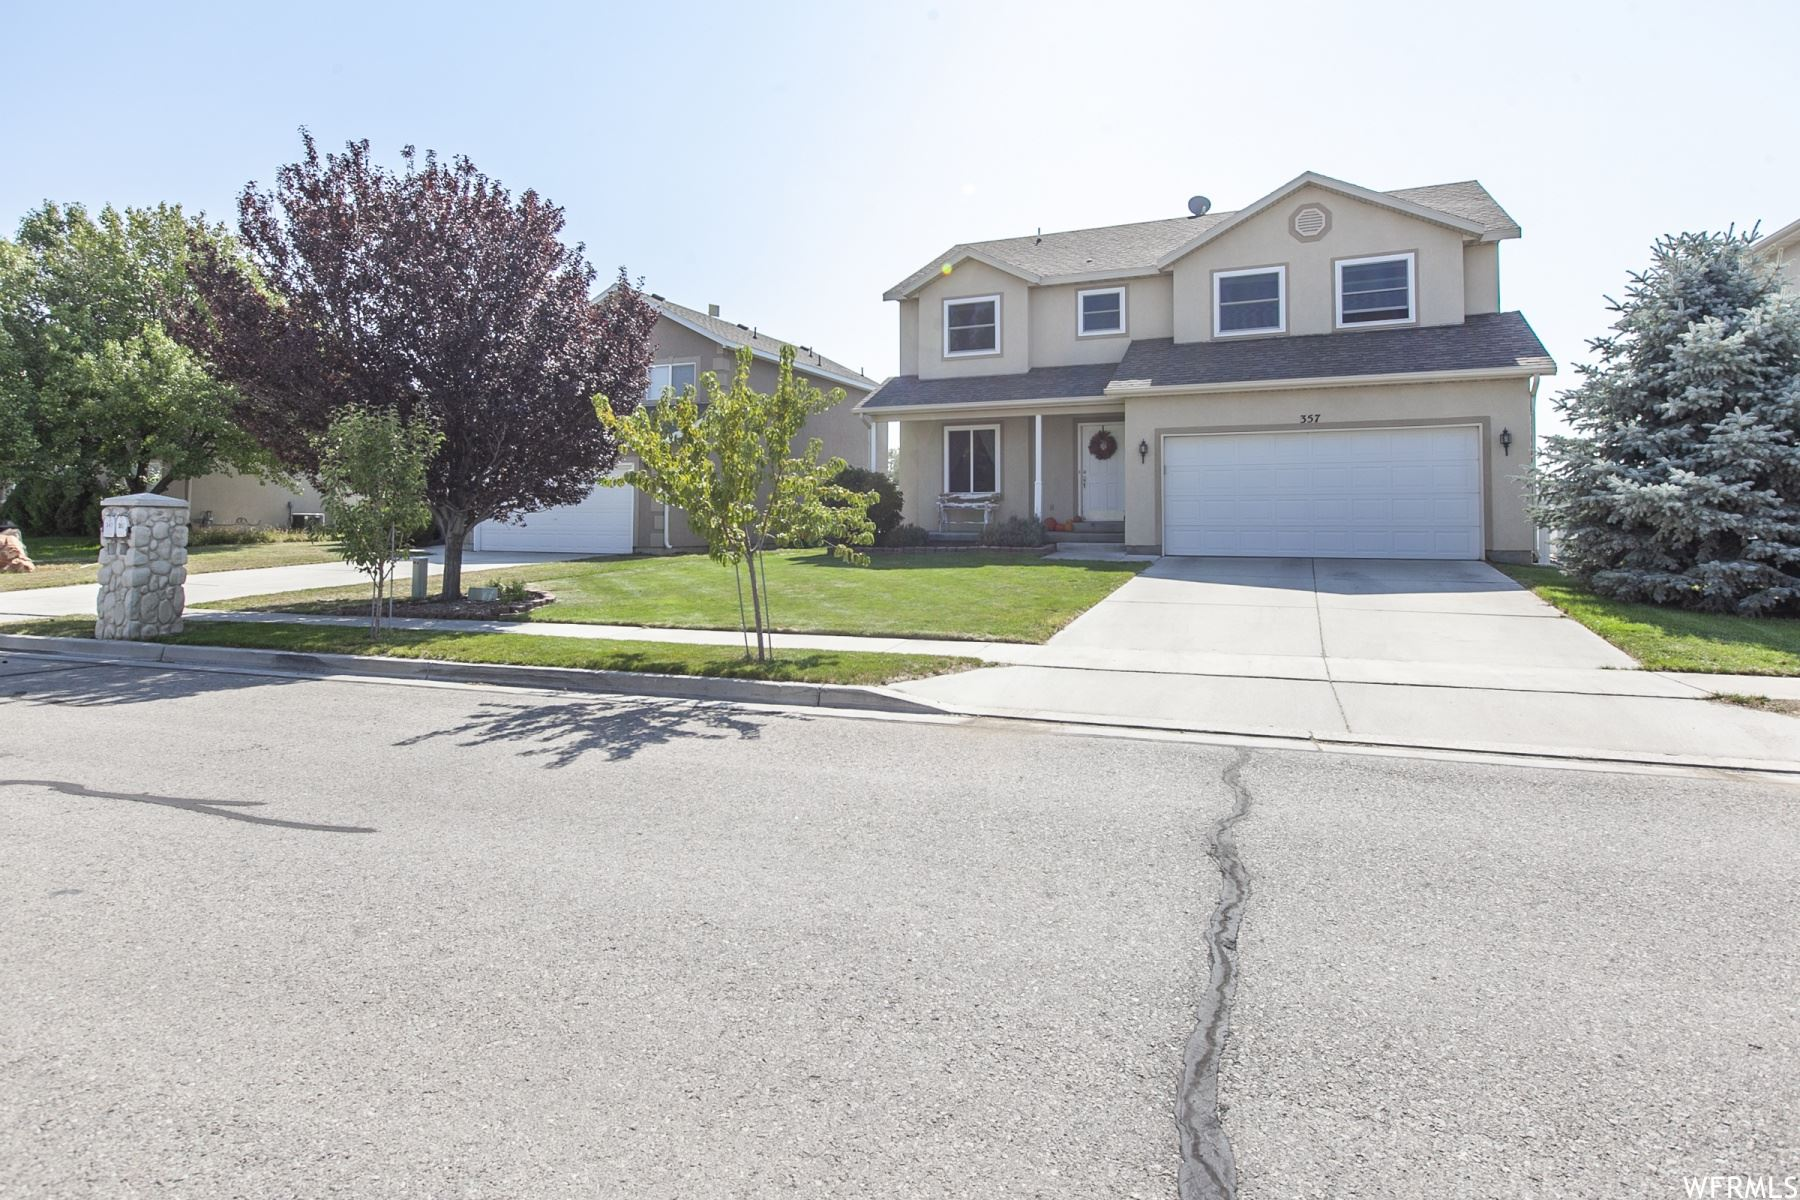 Photo of 357 W LAKEVIEW S DR, Lehi, UT 84043 (MLS # 1769352)